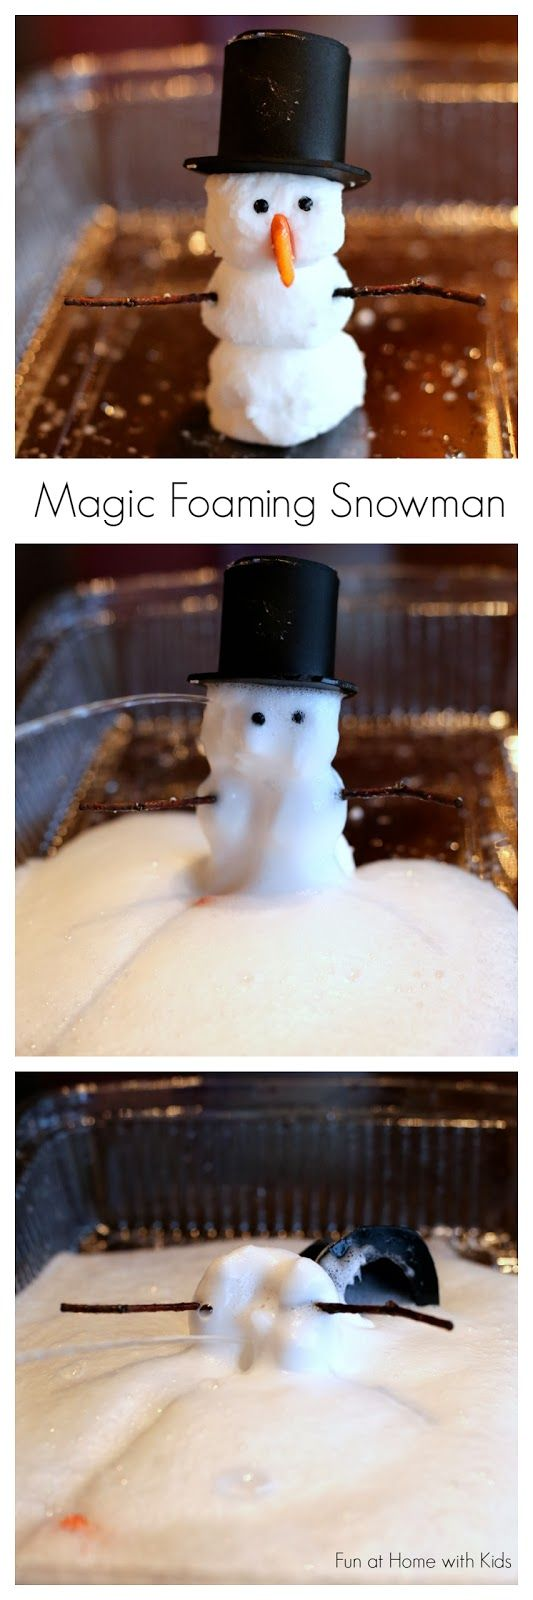 "{New Recipe} Foaming Dough you can use to make Magic Foaming Snowmen that ""melt"" into an icy puddle of frothy foam! From Fun at Home with Kids"